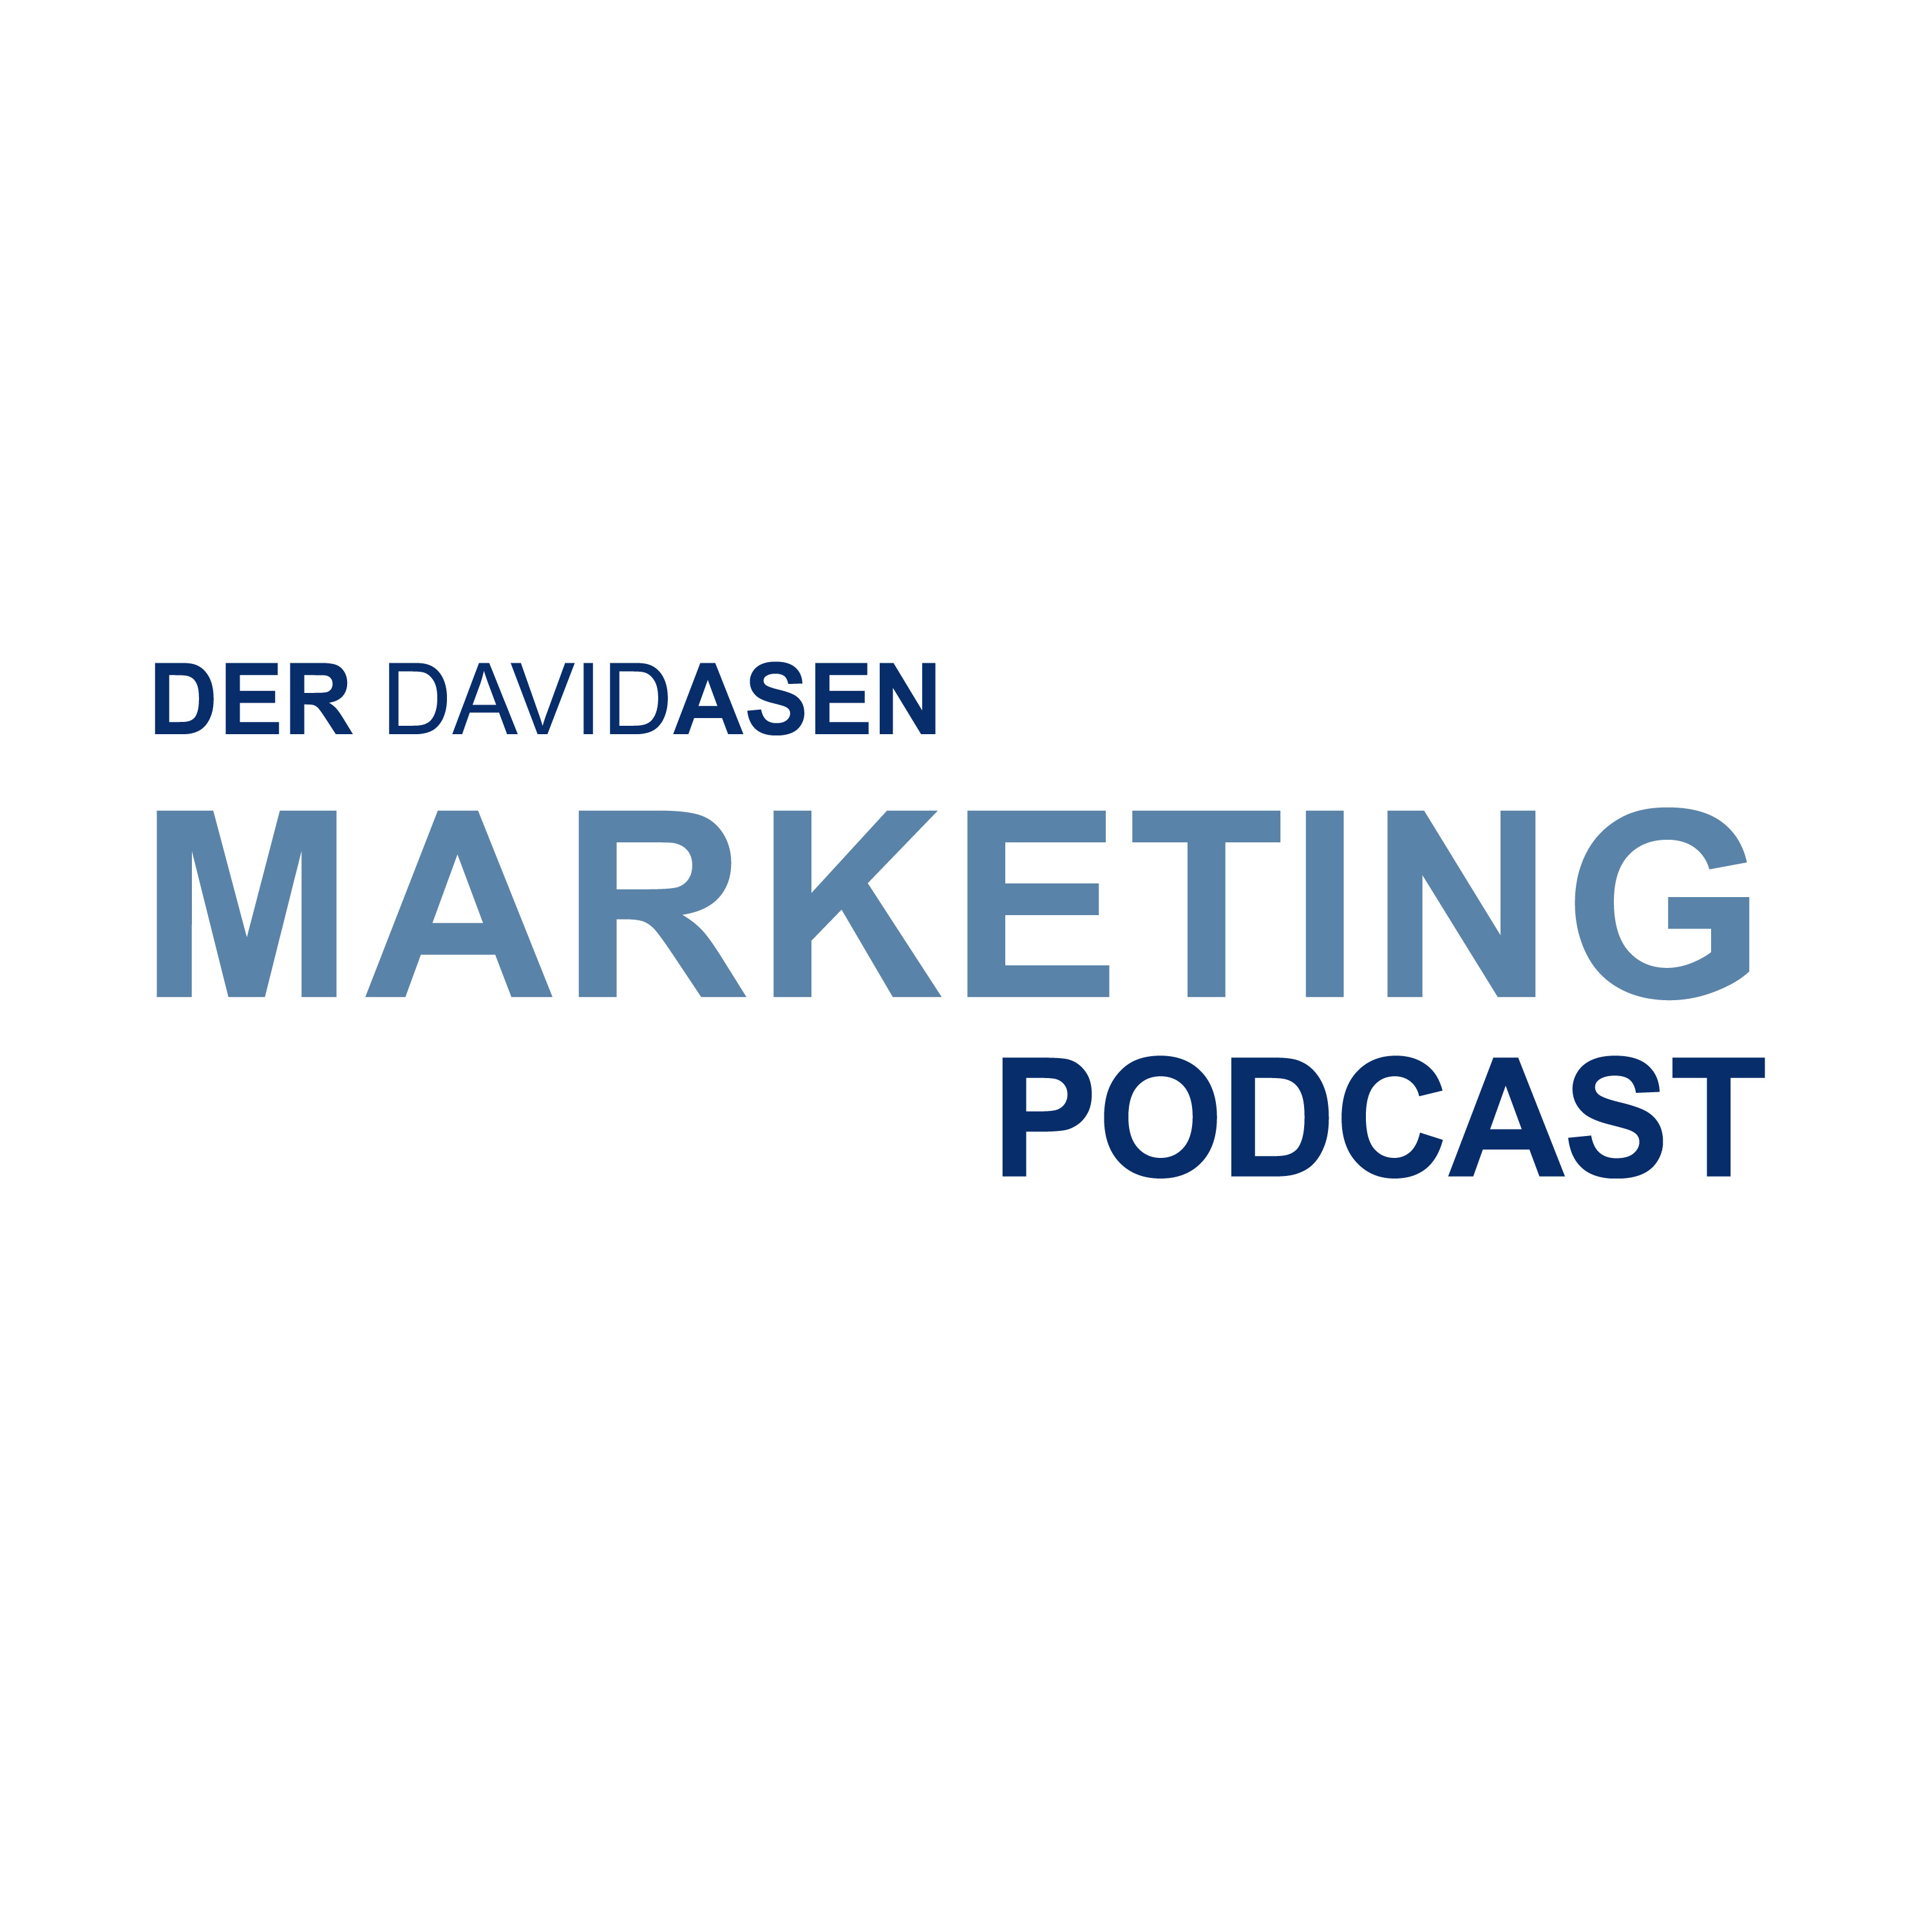 David Asen Marketing Podcast - Online Marketing | SEO | Geld verdienen im Internet